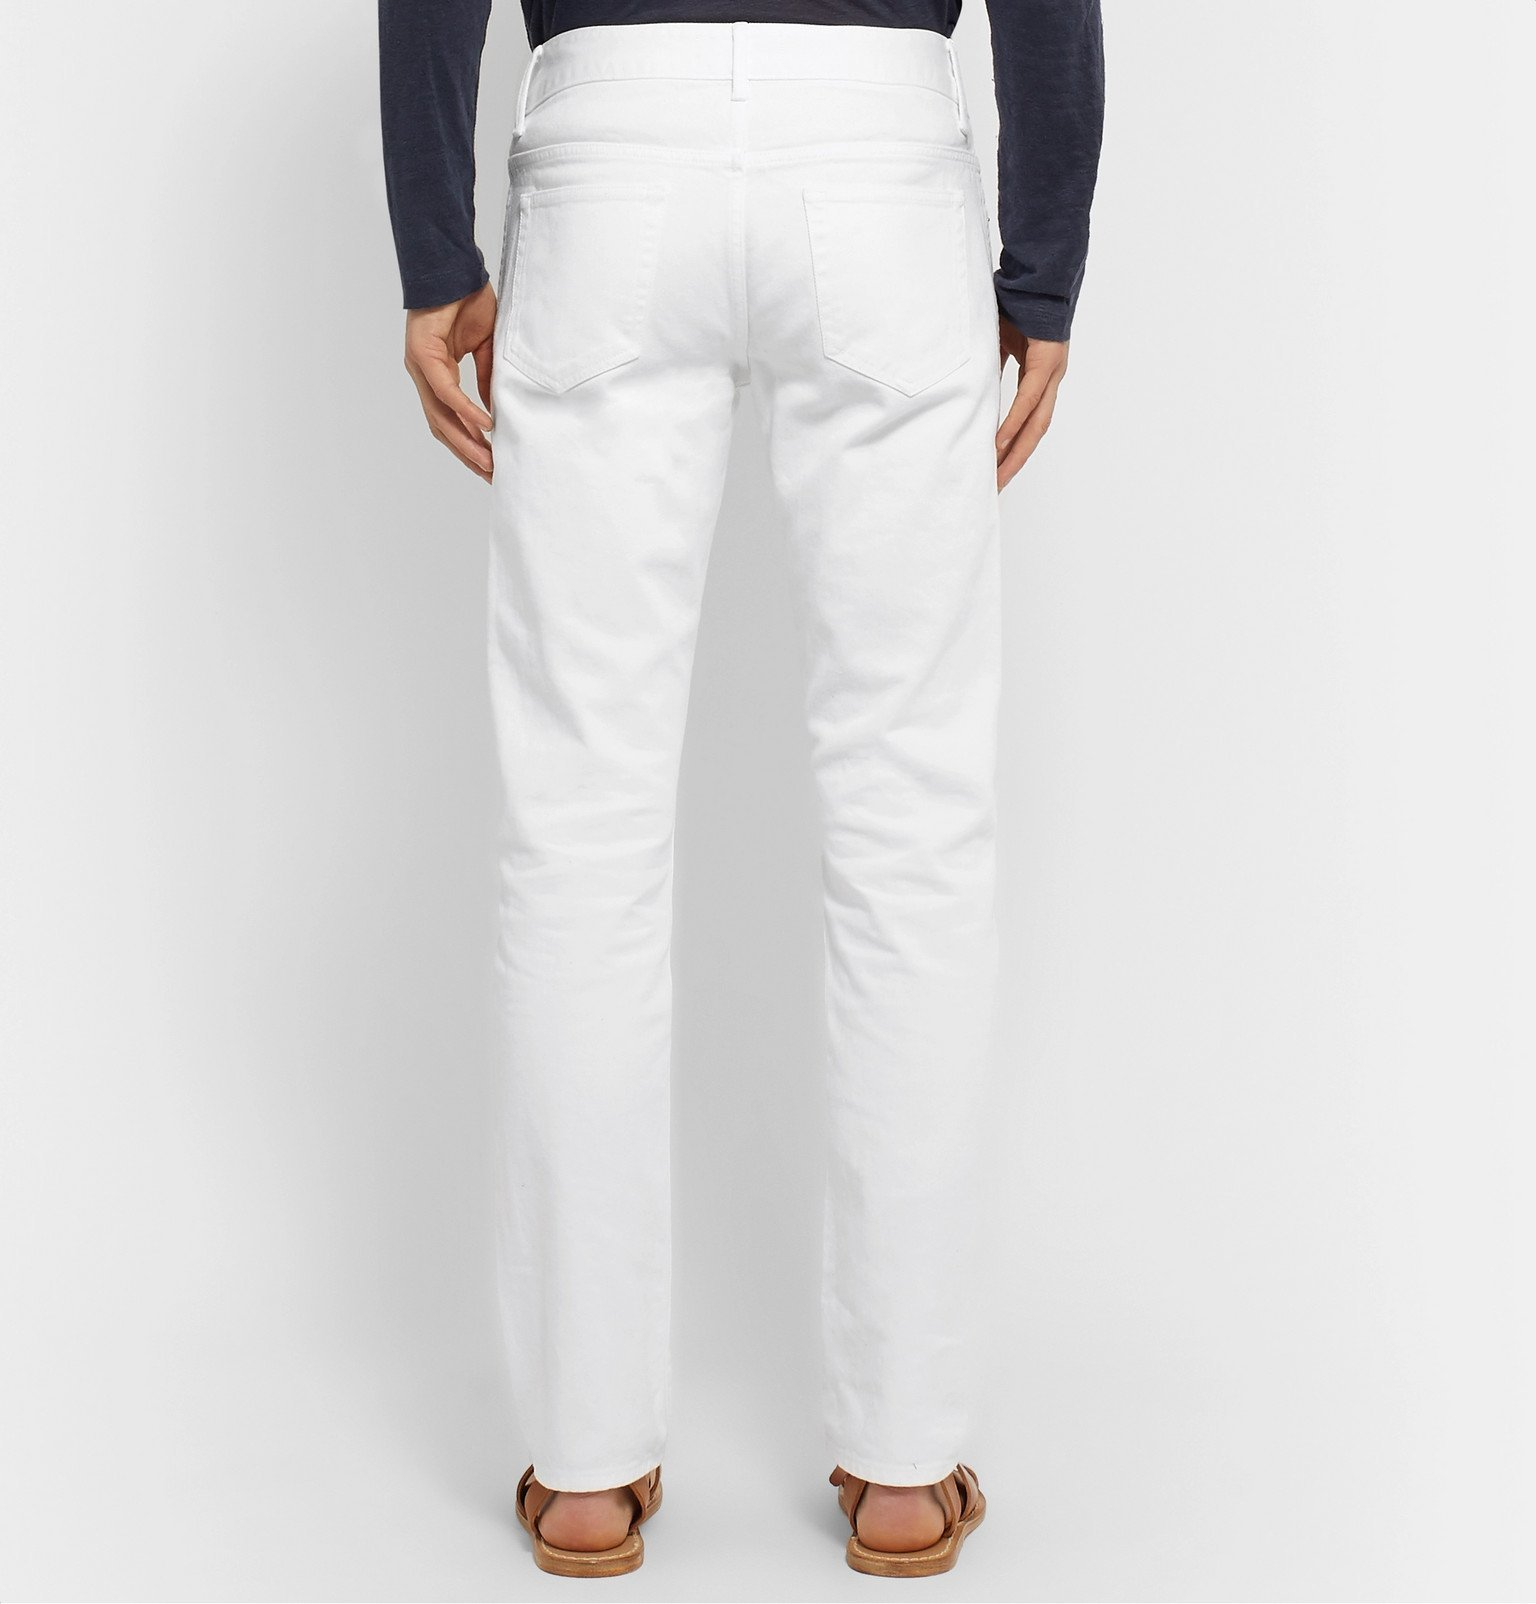 Officine Generale - Kurt Slim-Fit Denim Jeans - White